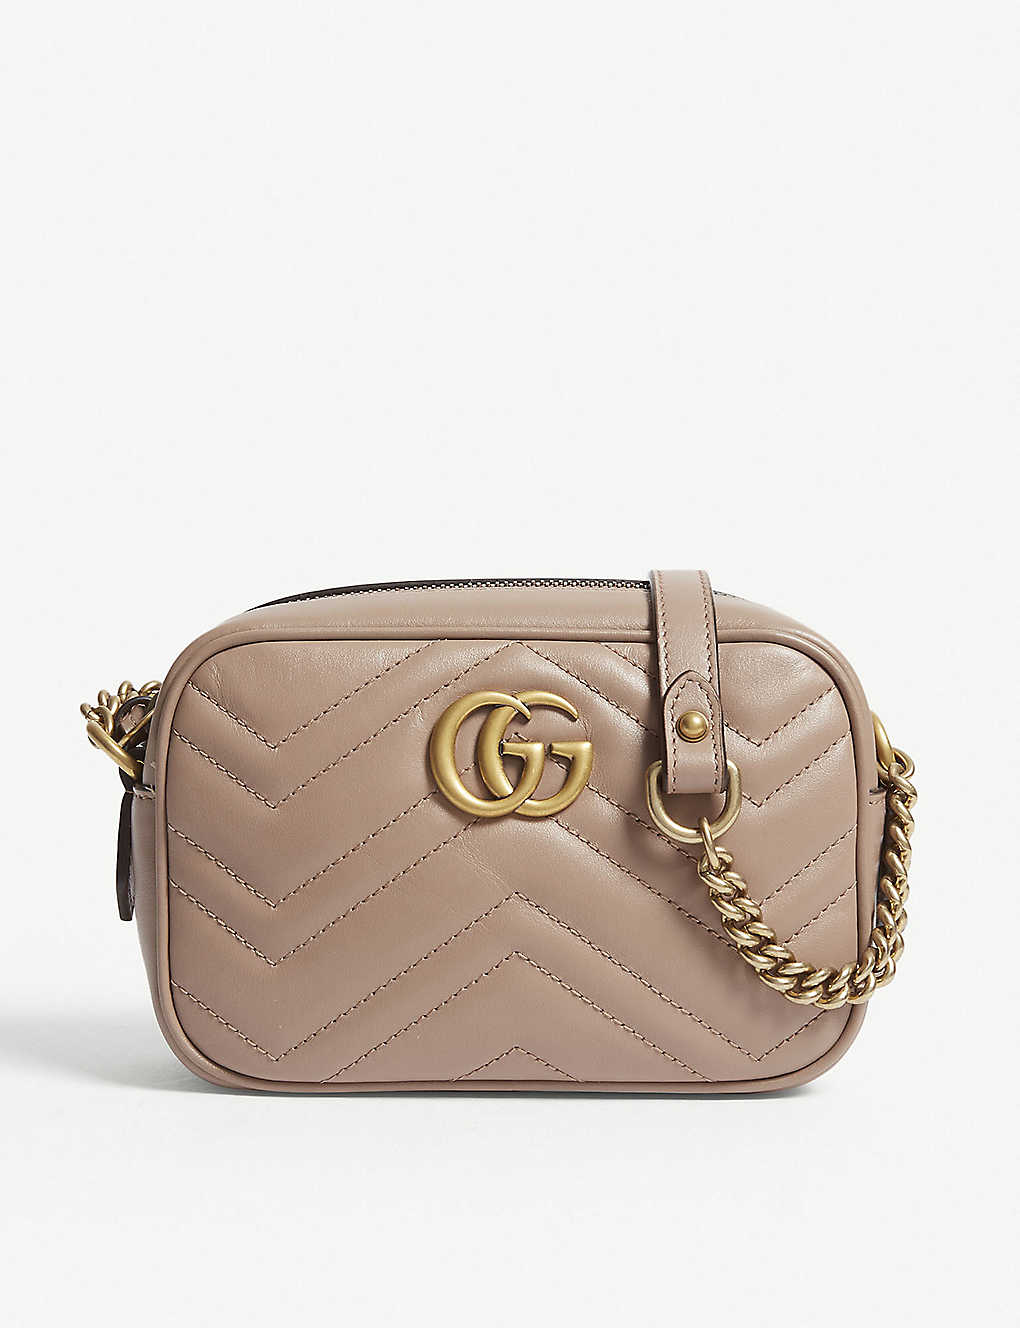 12b841e8dcac GUCCI - Marmont leather cross-body bag | Selfridges.com